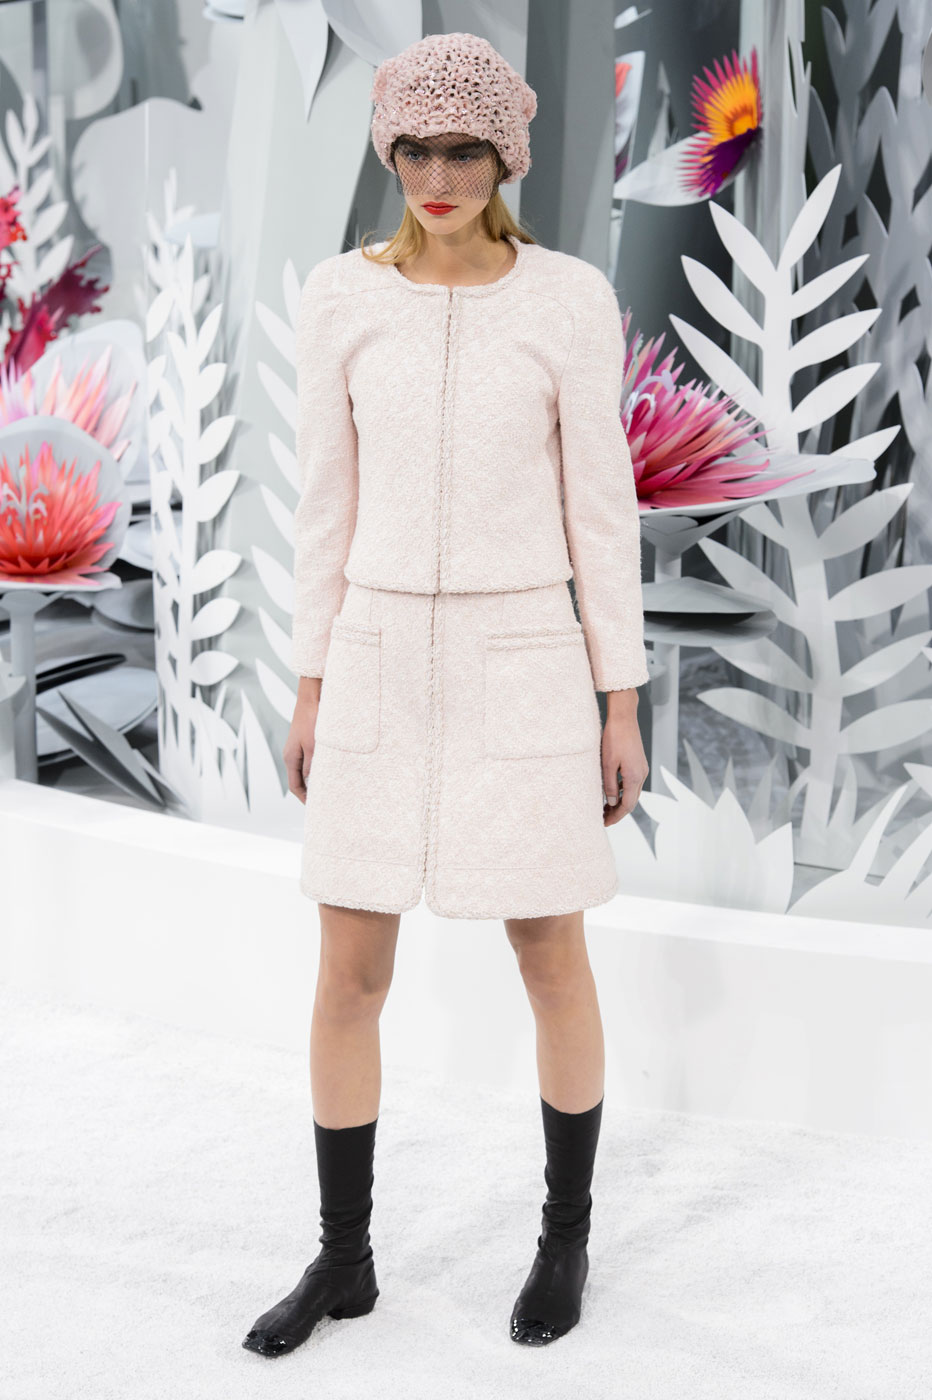 Chanel-fashion-runway-show-haute-couture-paris-spring-summer-2015-the-impression-024